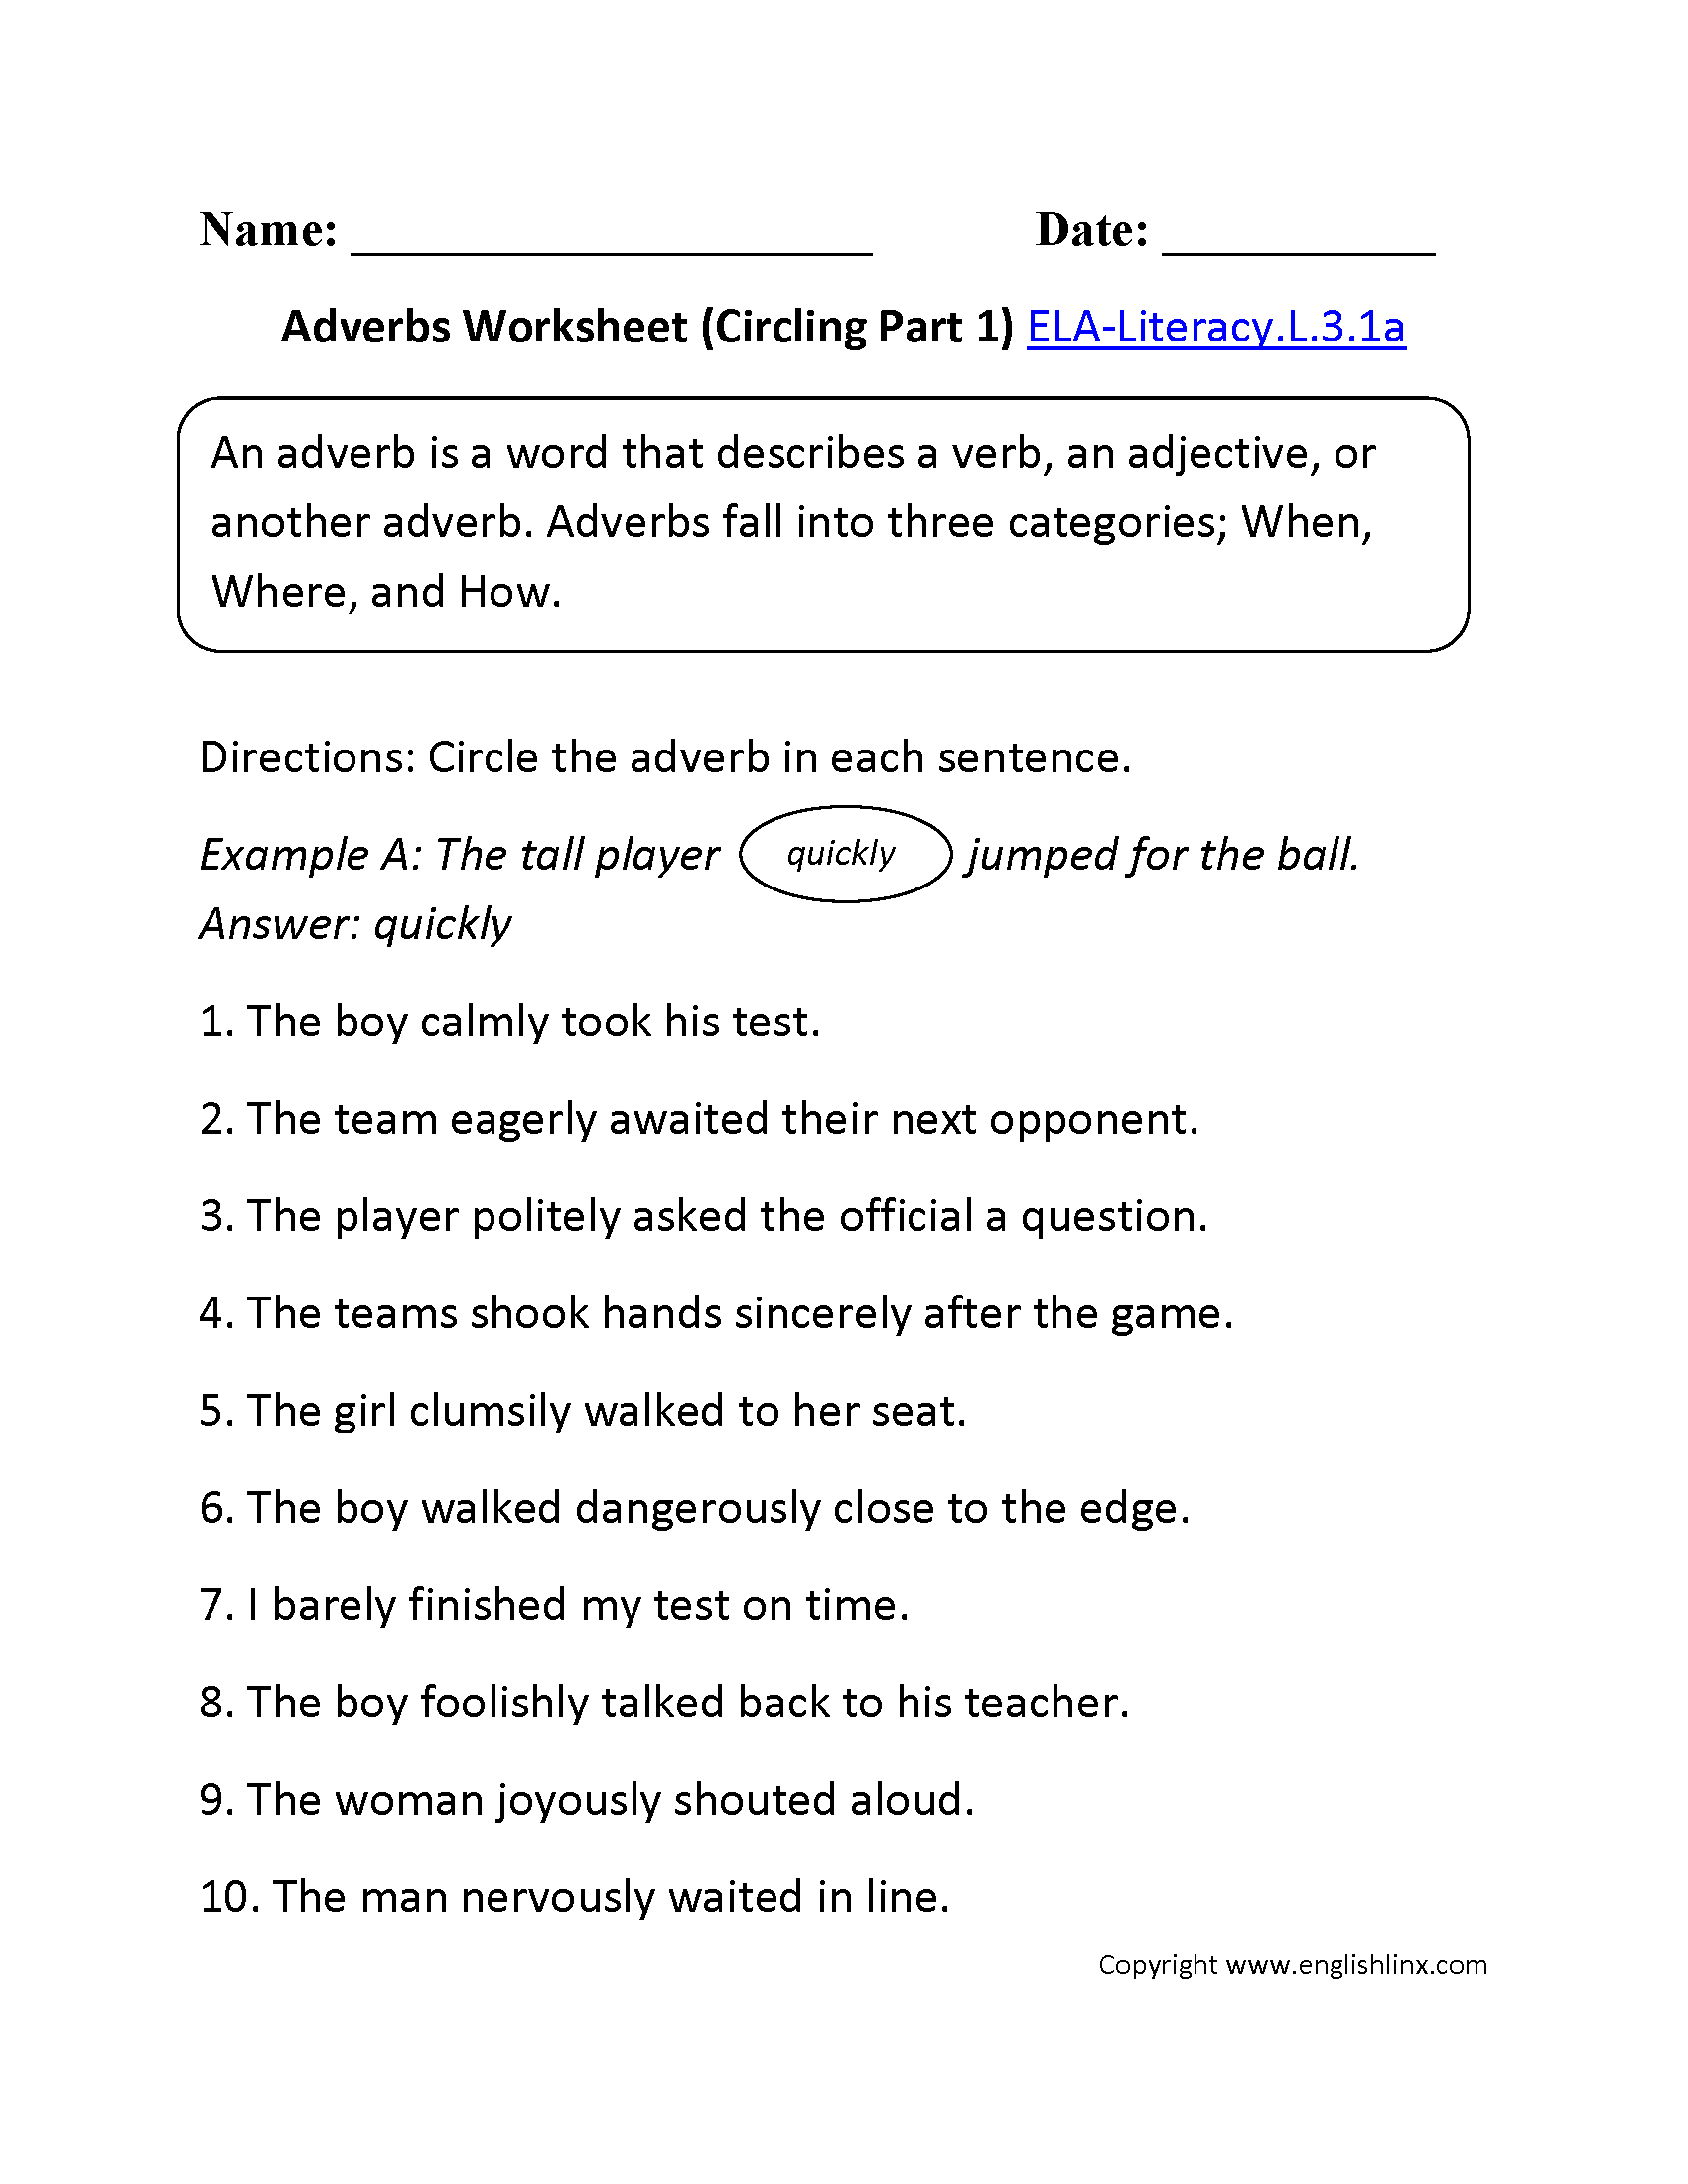 Worksheets Second Grade Grammar Worksheets adverbs worksheet 1 ela literacy l 3 1a language english worksheets that are aligned to the grade common core standards for language